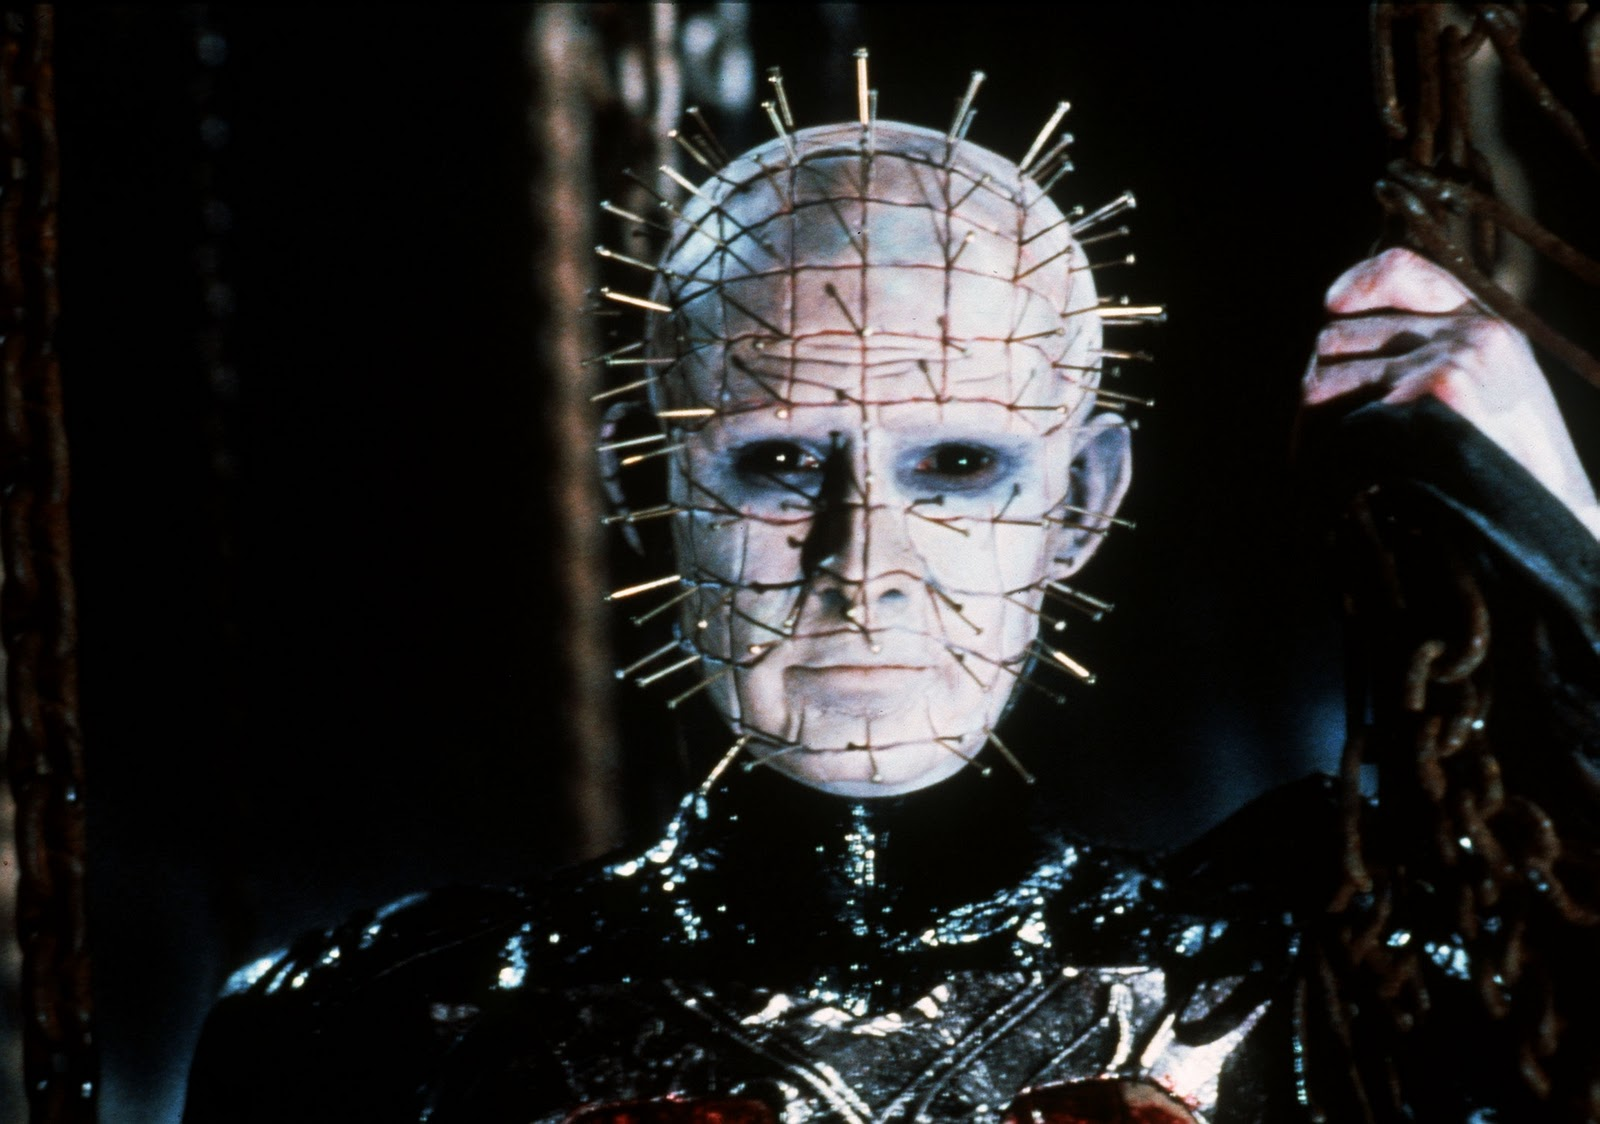 Hellraiser III : Hell on Earth